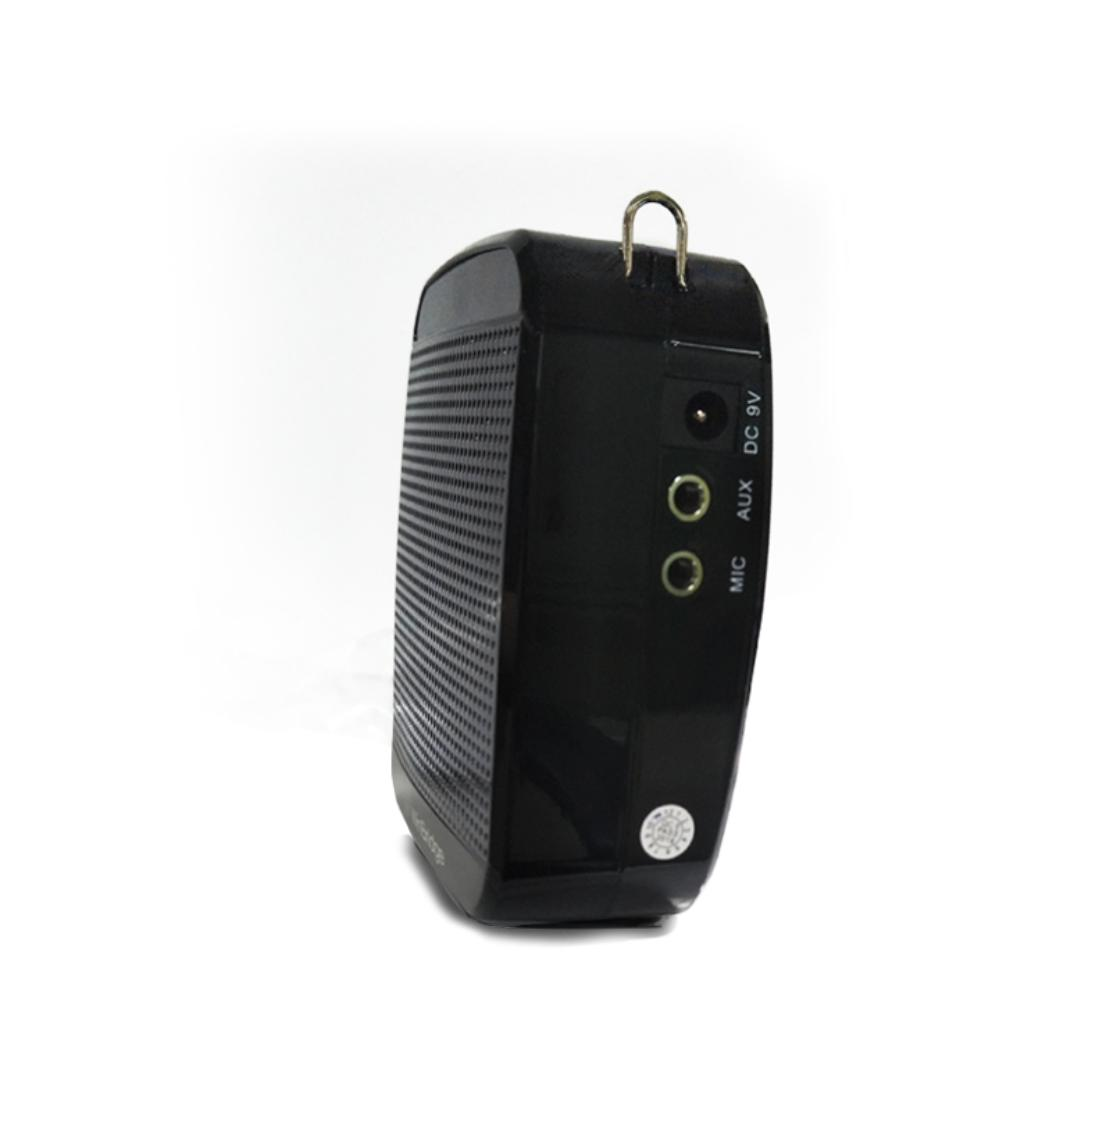 loudspeaker voice amplifier wireless with waistband for speech